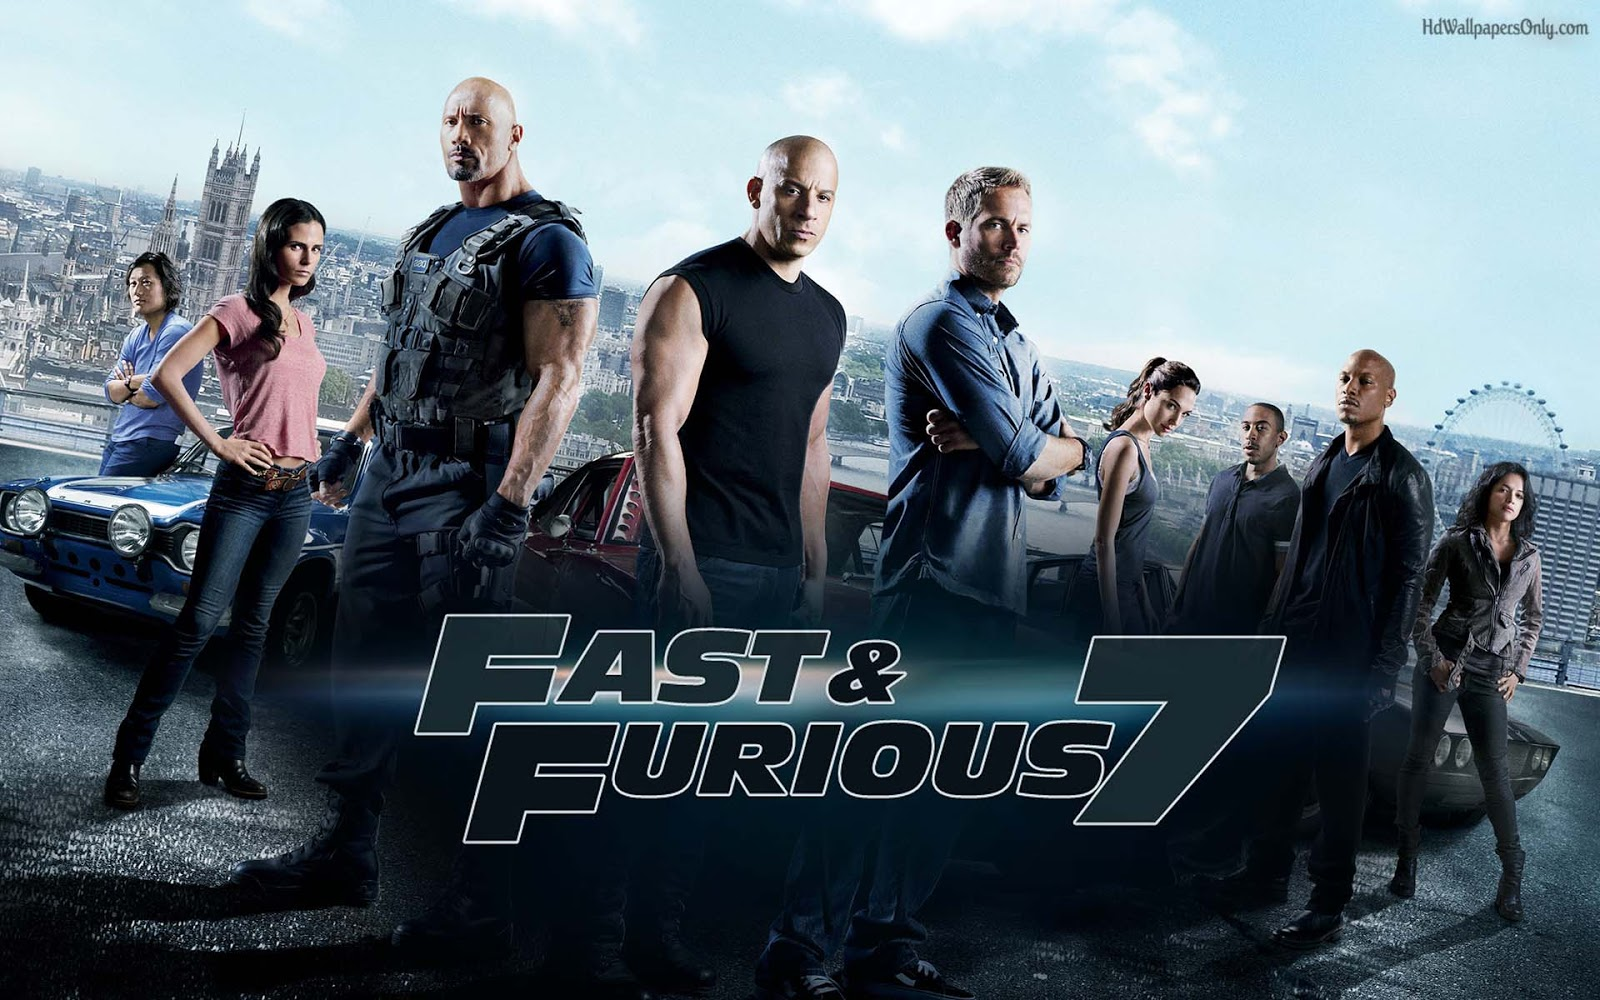 Fast and Furious 7 (HD MOVIE 2015) - Action Movie - Full ...Fast And Furious 7 Trailer Official 2013 Full Movie